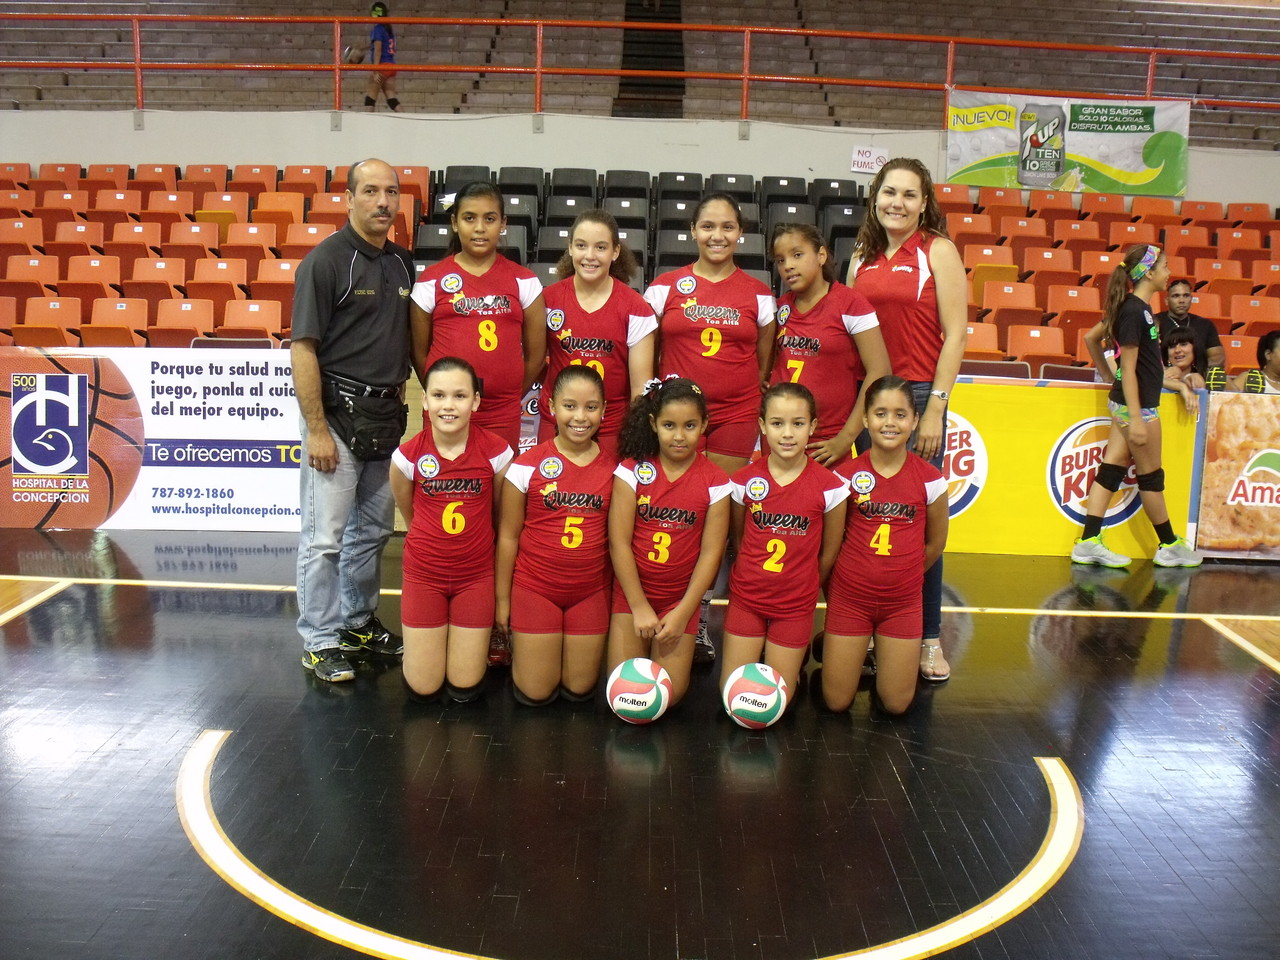 Equipo Queen's Richard Campeonas en 10 under 2013